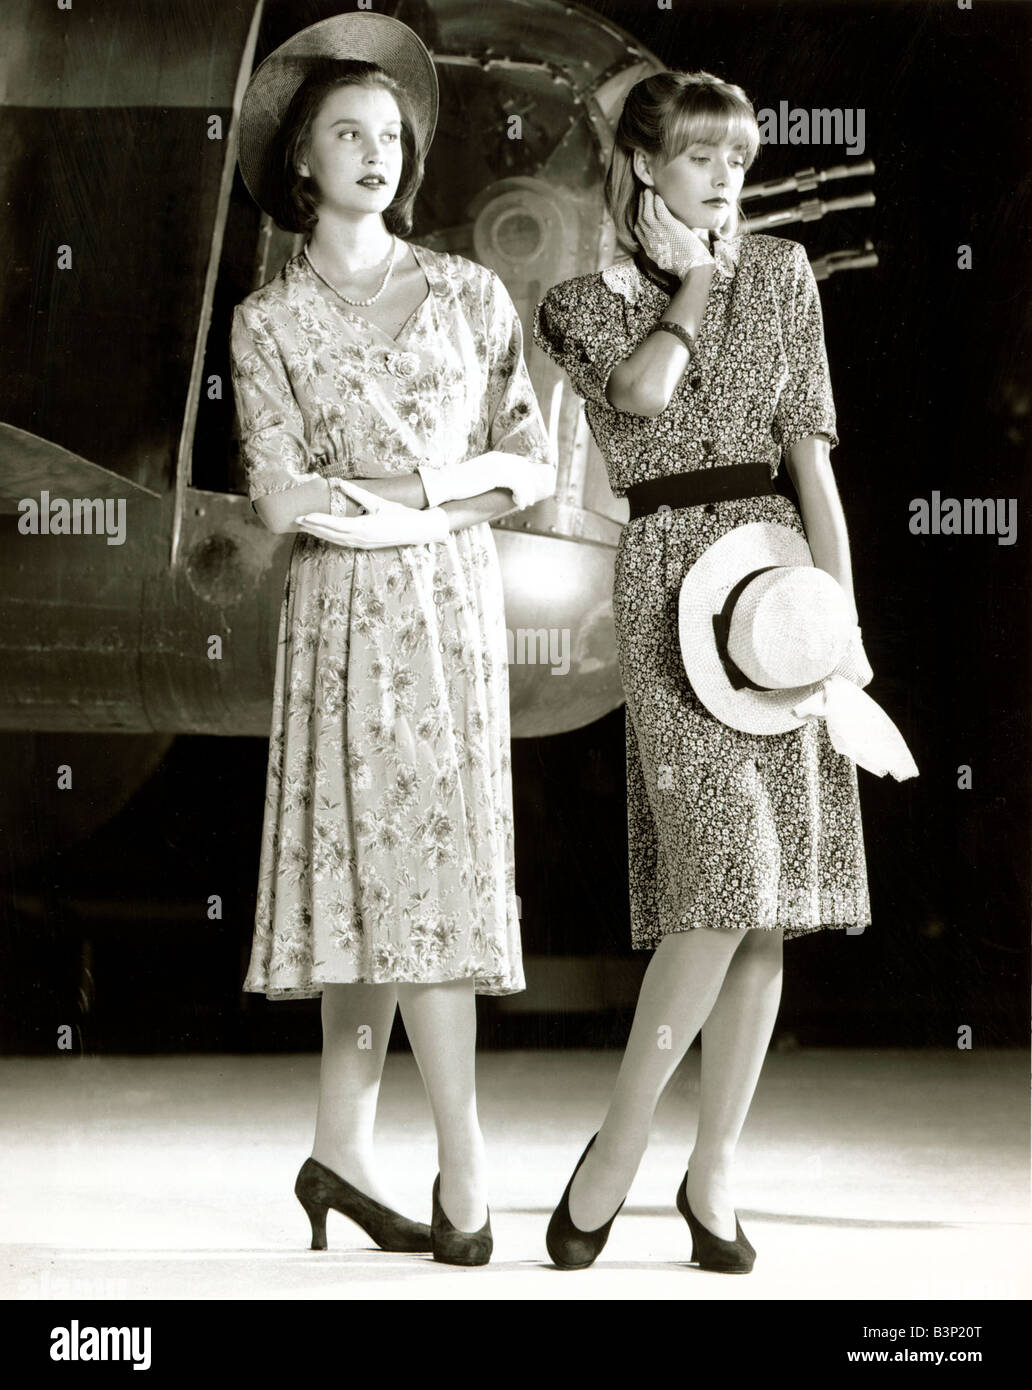 Fashion 1940s Two Female Models Flirty 40s Style Evening Dress With Stock Photo Royalty Free